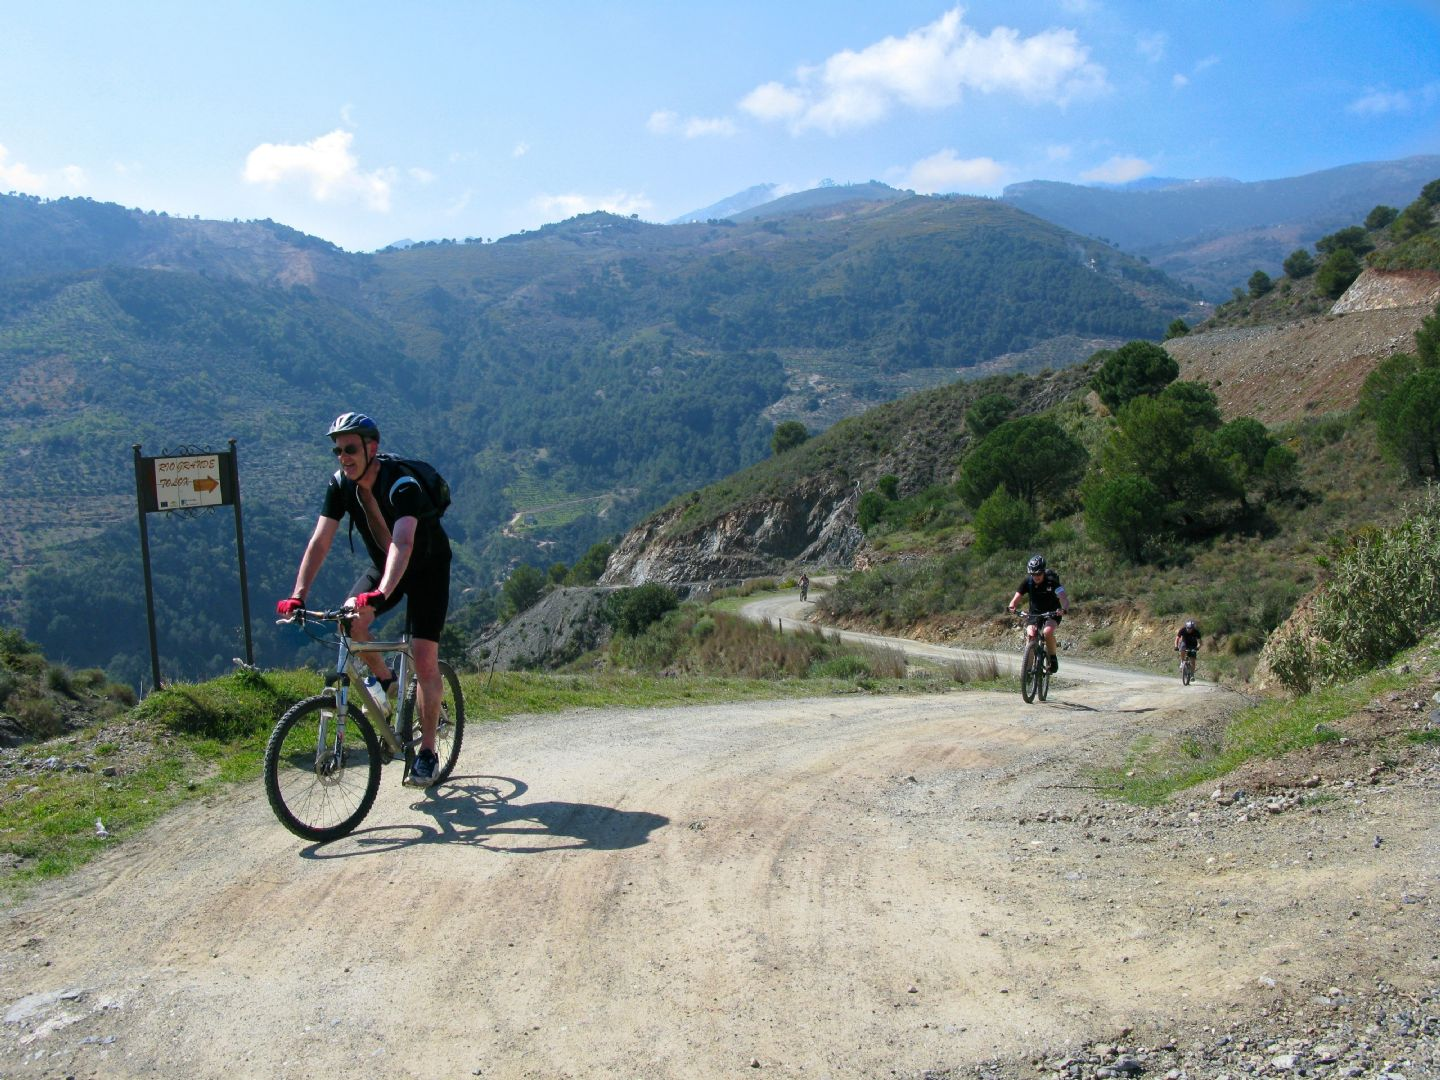 Trans andaluz  2253.jpg - Spain - Trans Andaluz - Guided Mountain Bike Holiday - Mountain Biking